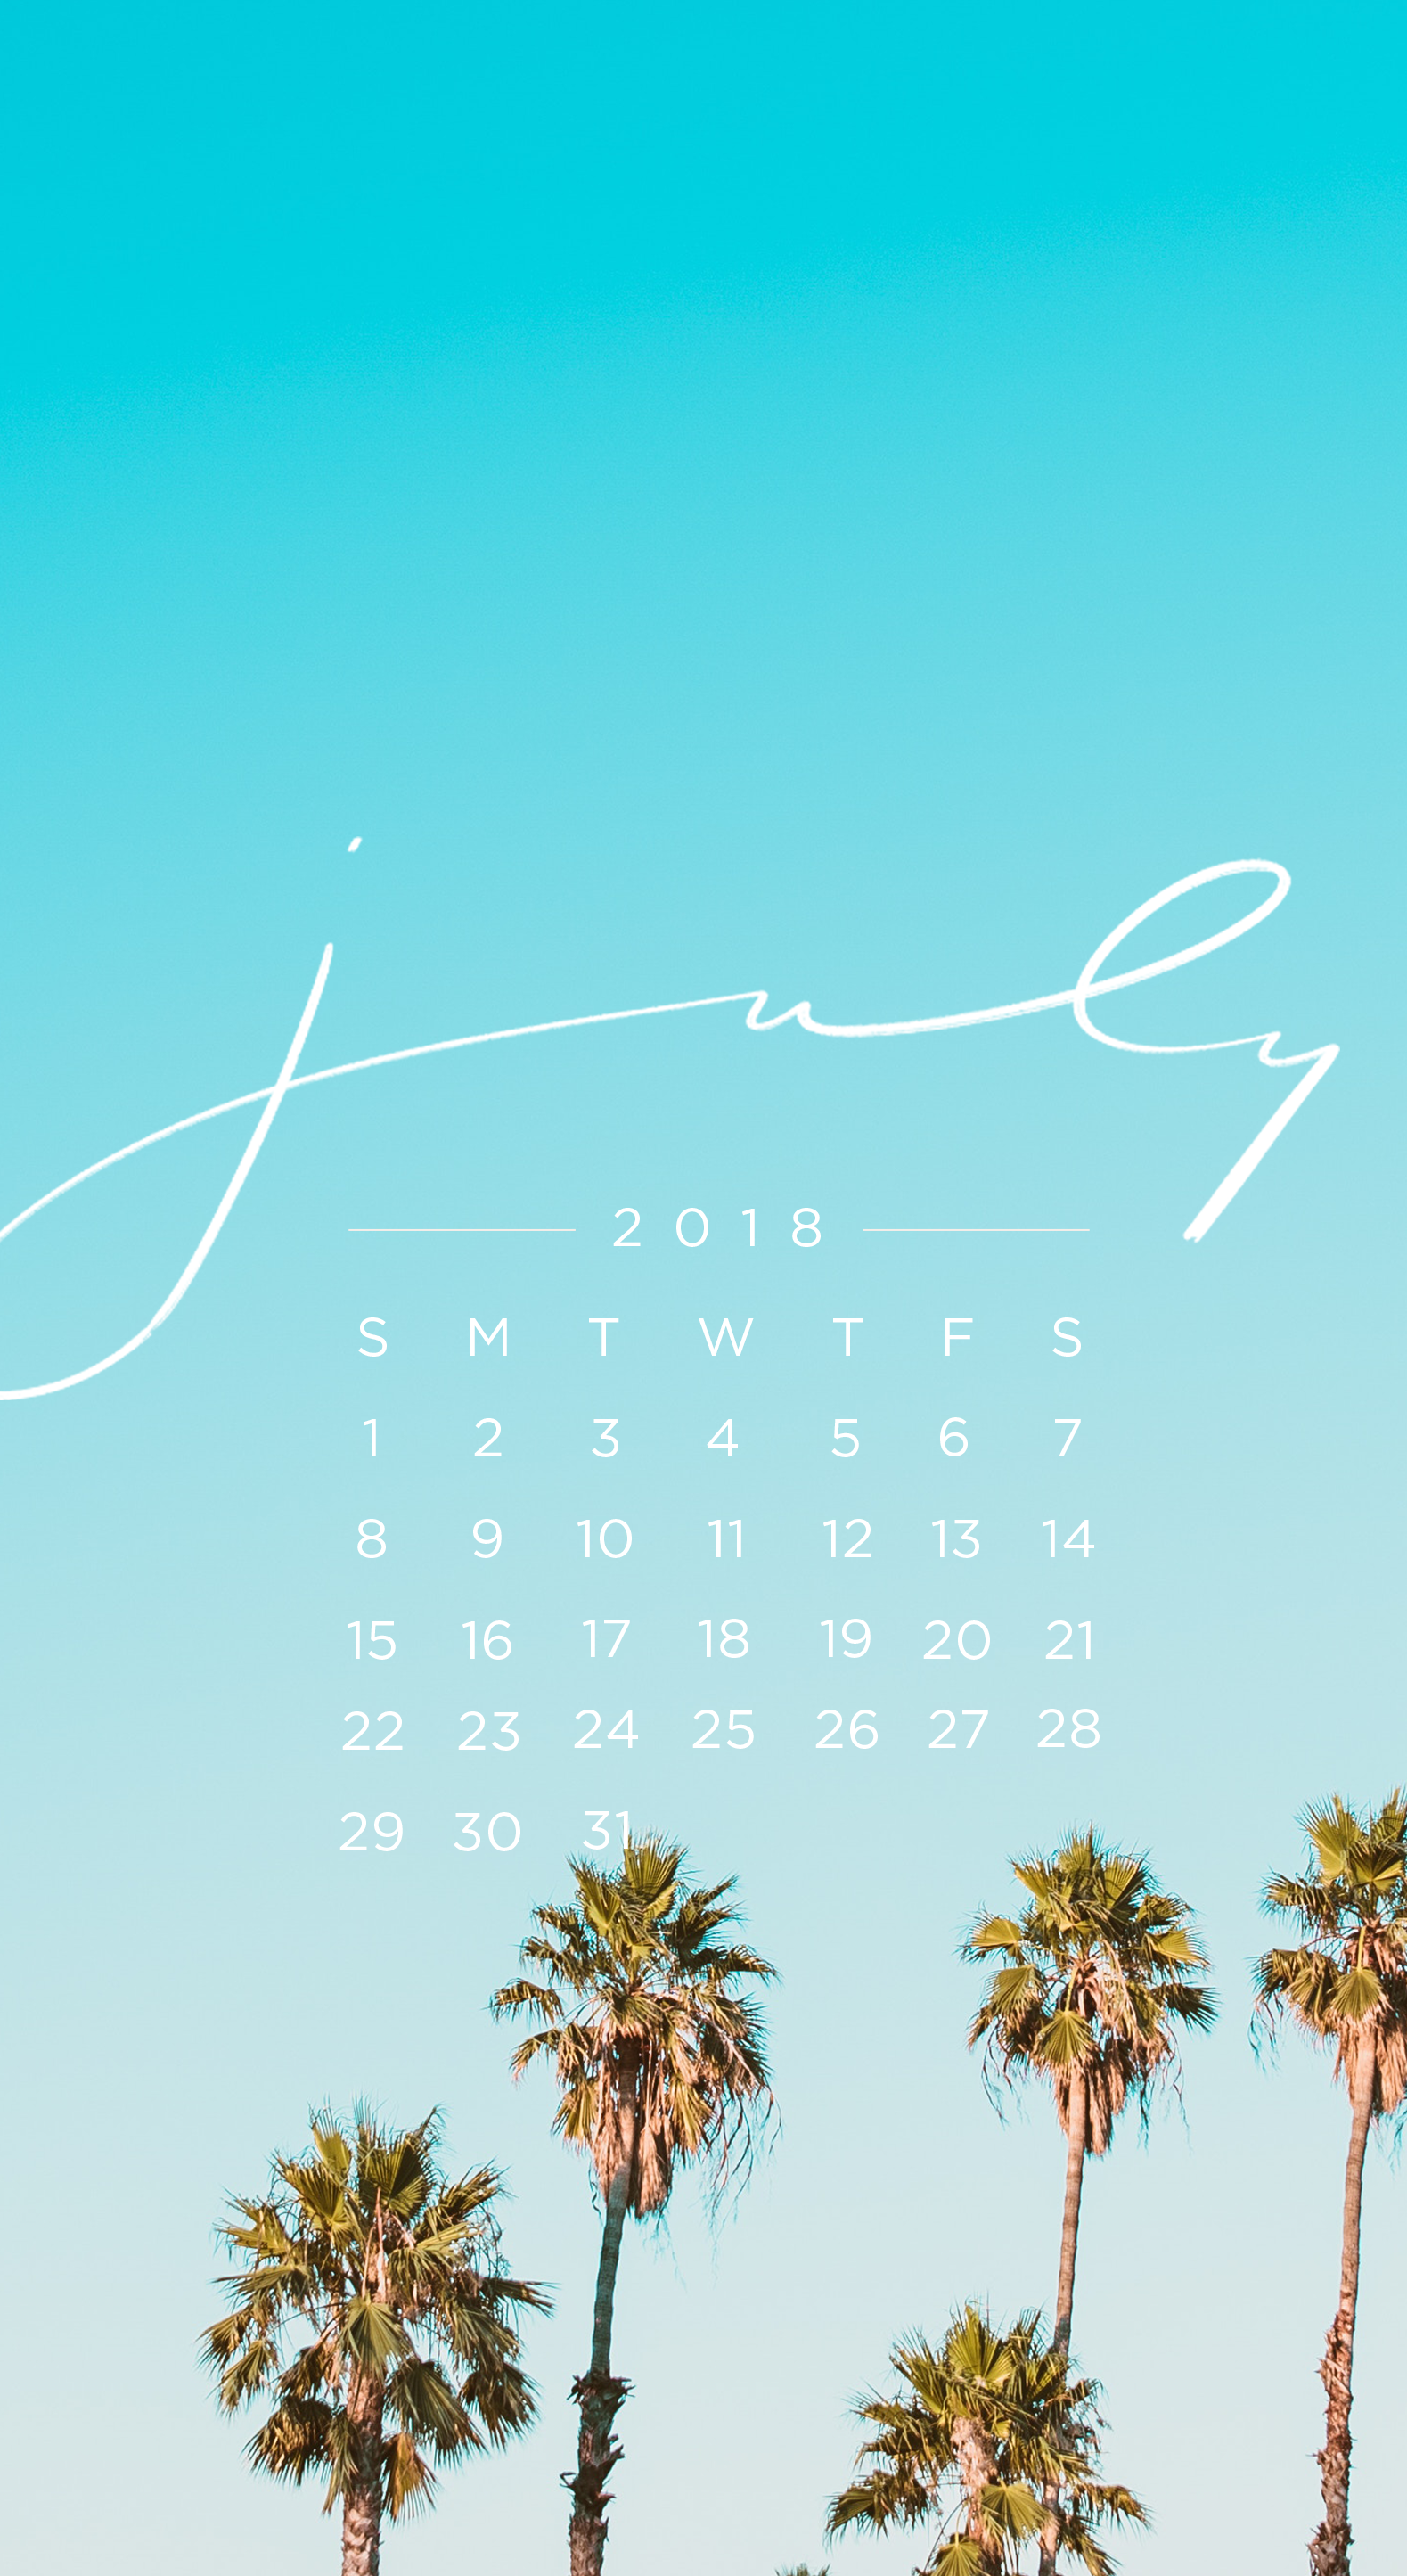 Free Downloadable Tech Backgrounds For July 2018 The